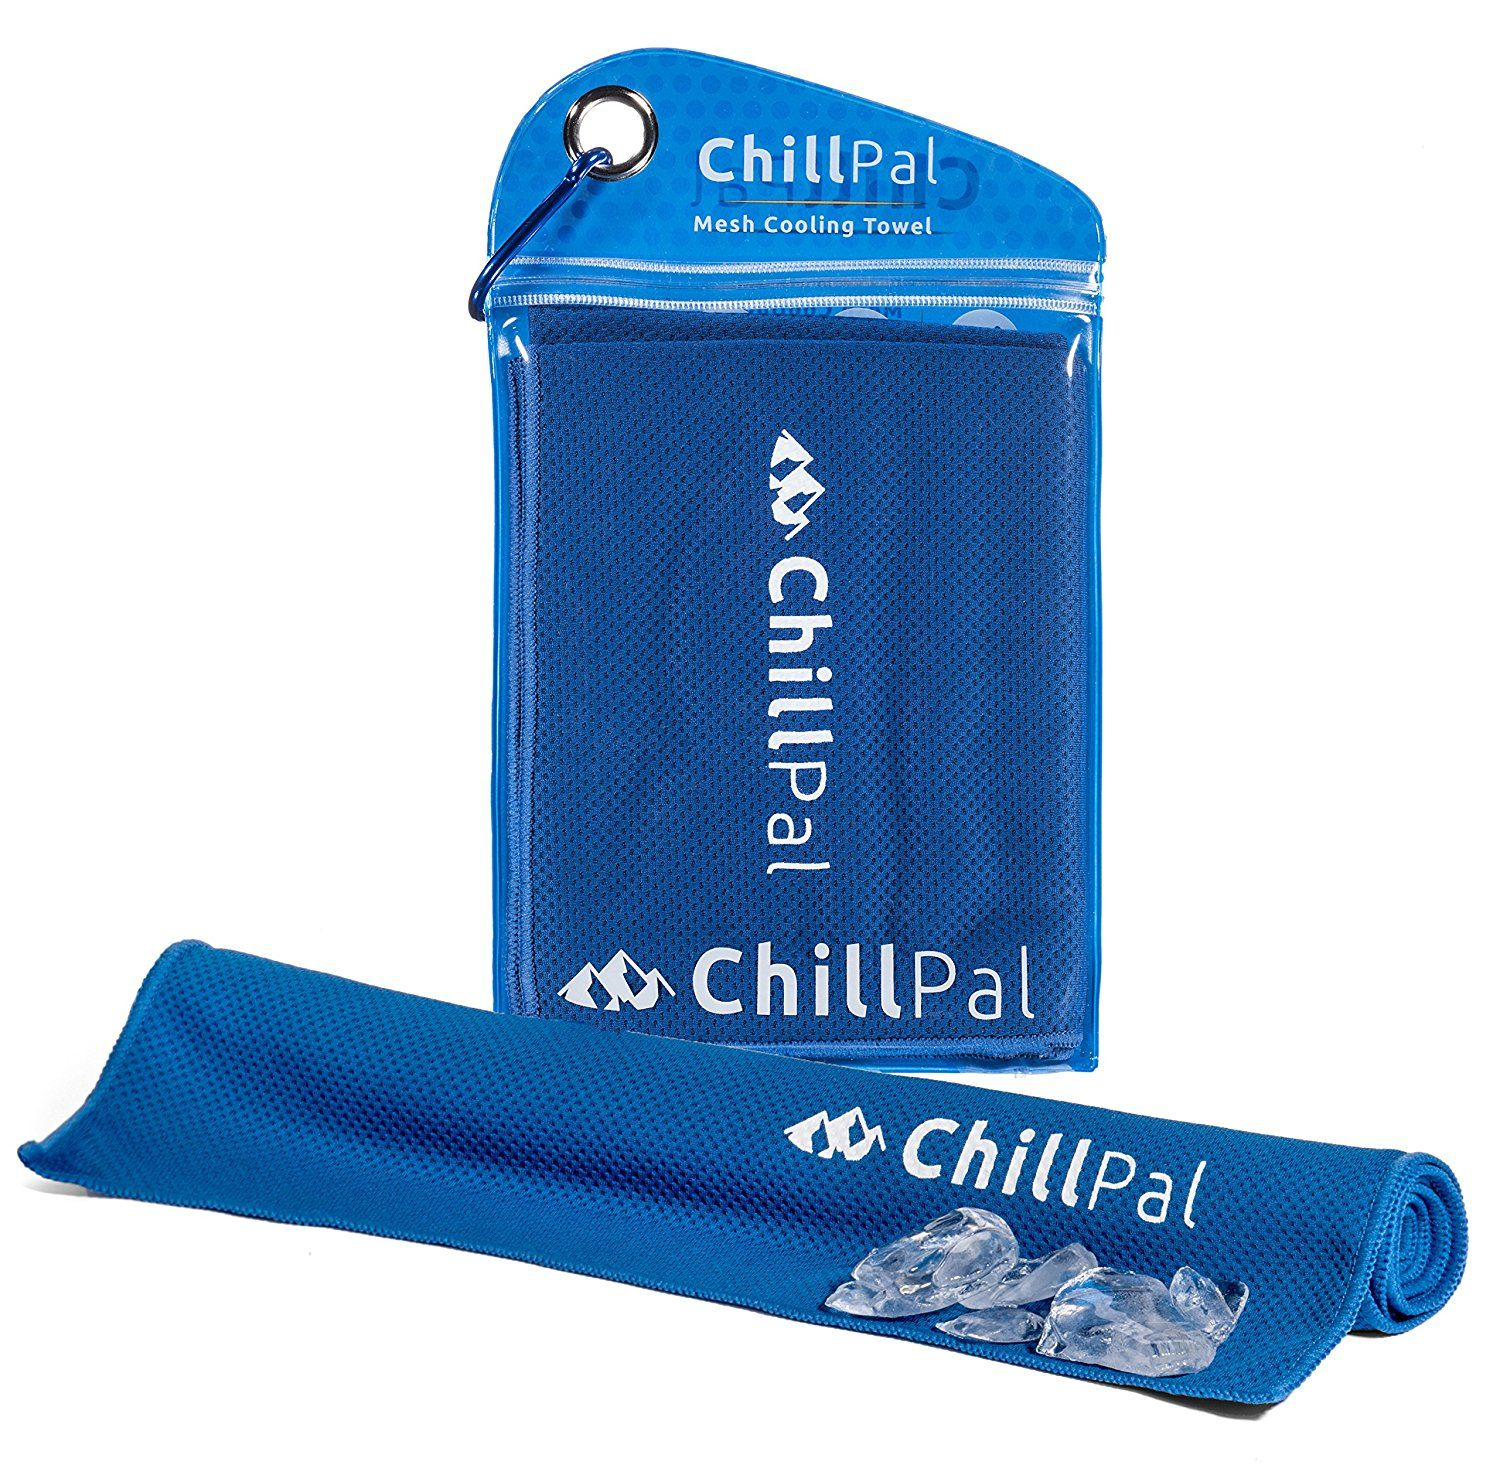 Chill Pal Mesh Cooling Towel A Stay Cool Evaporative Technology A